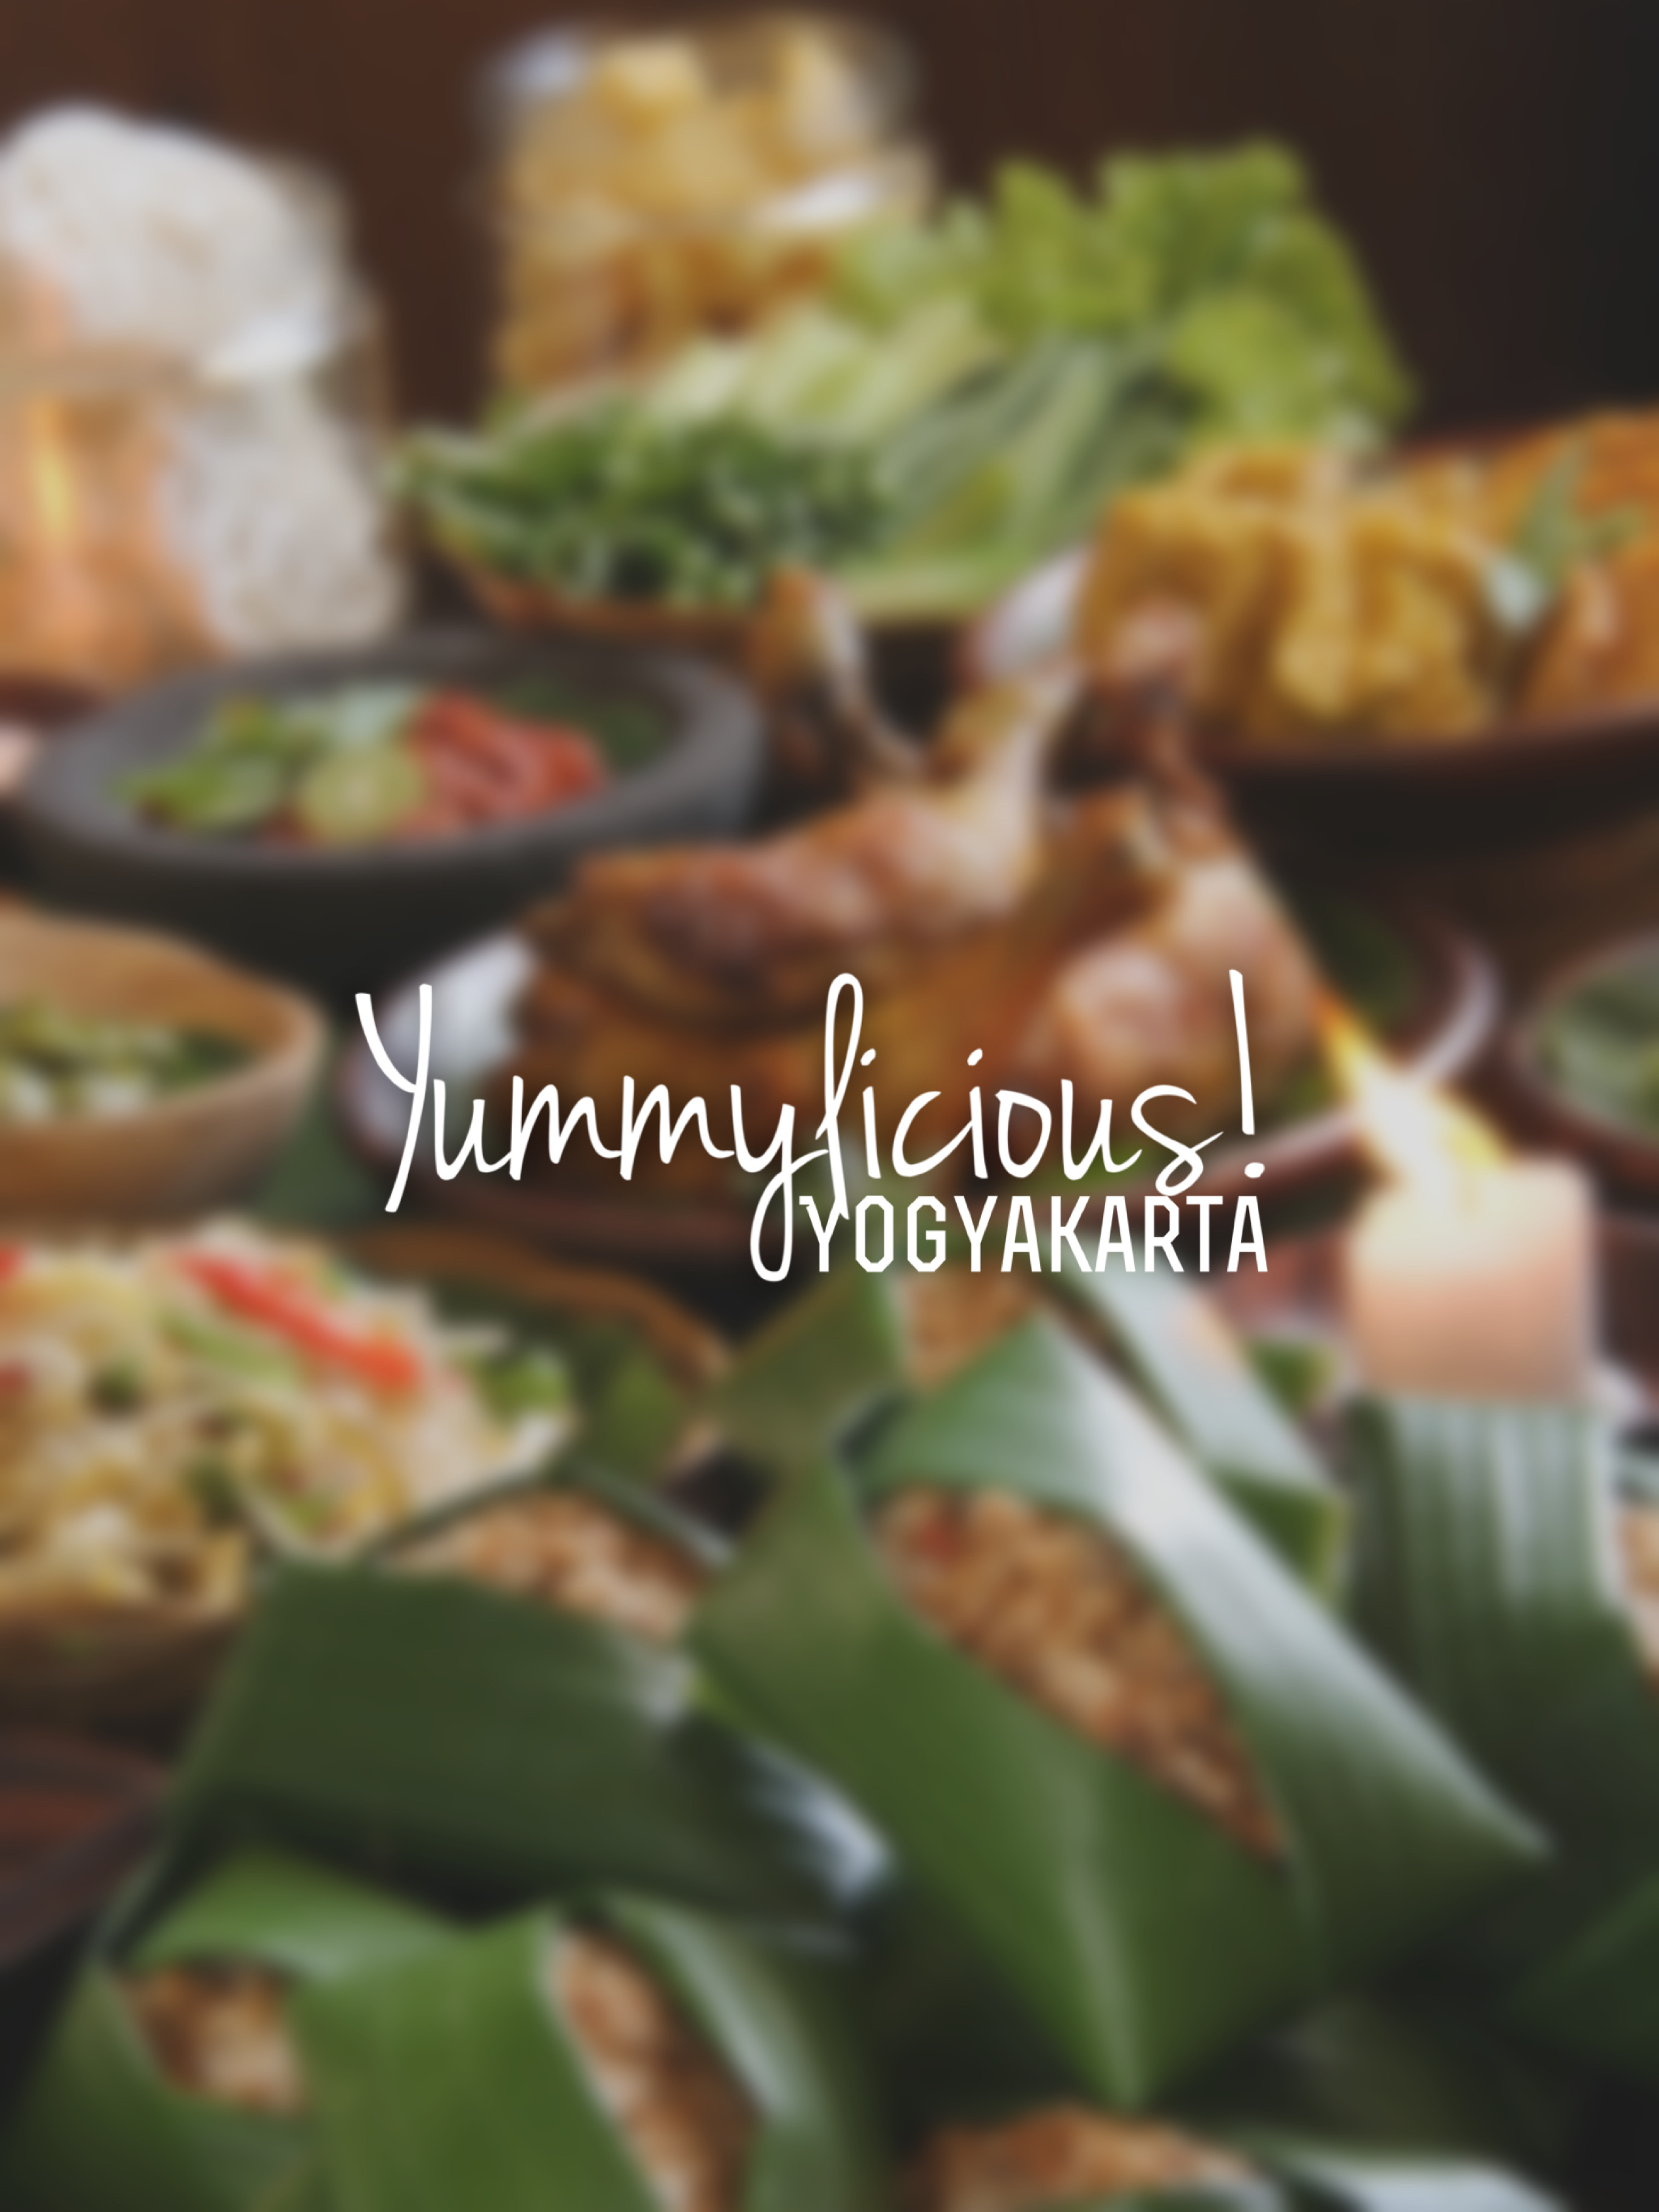 Yogyakarta Food Guide: Classic Indonesian Dishes & Best Places to Eat